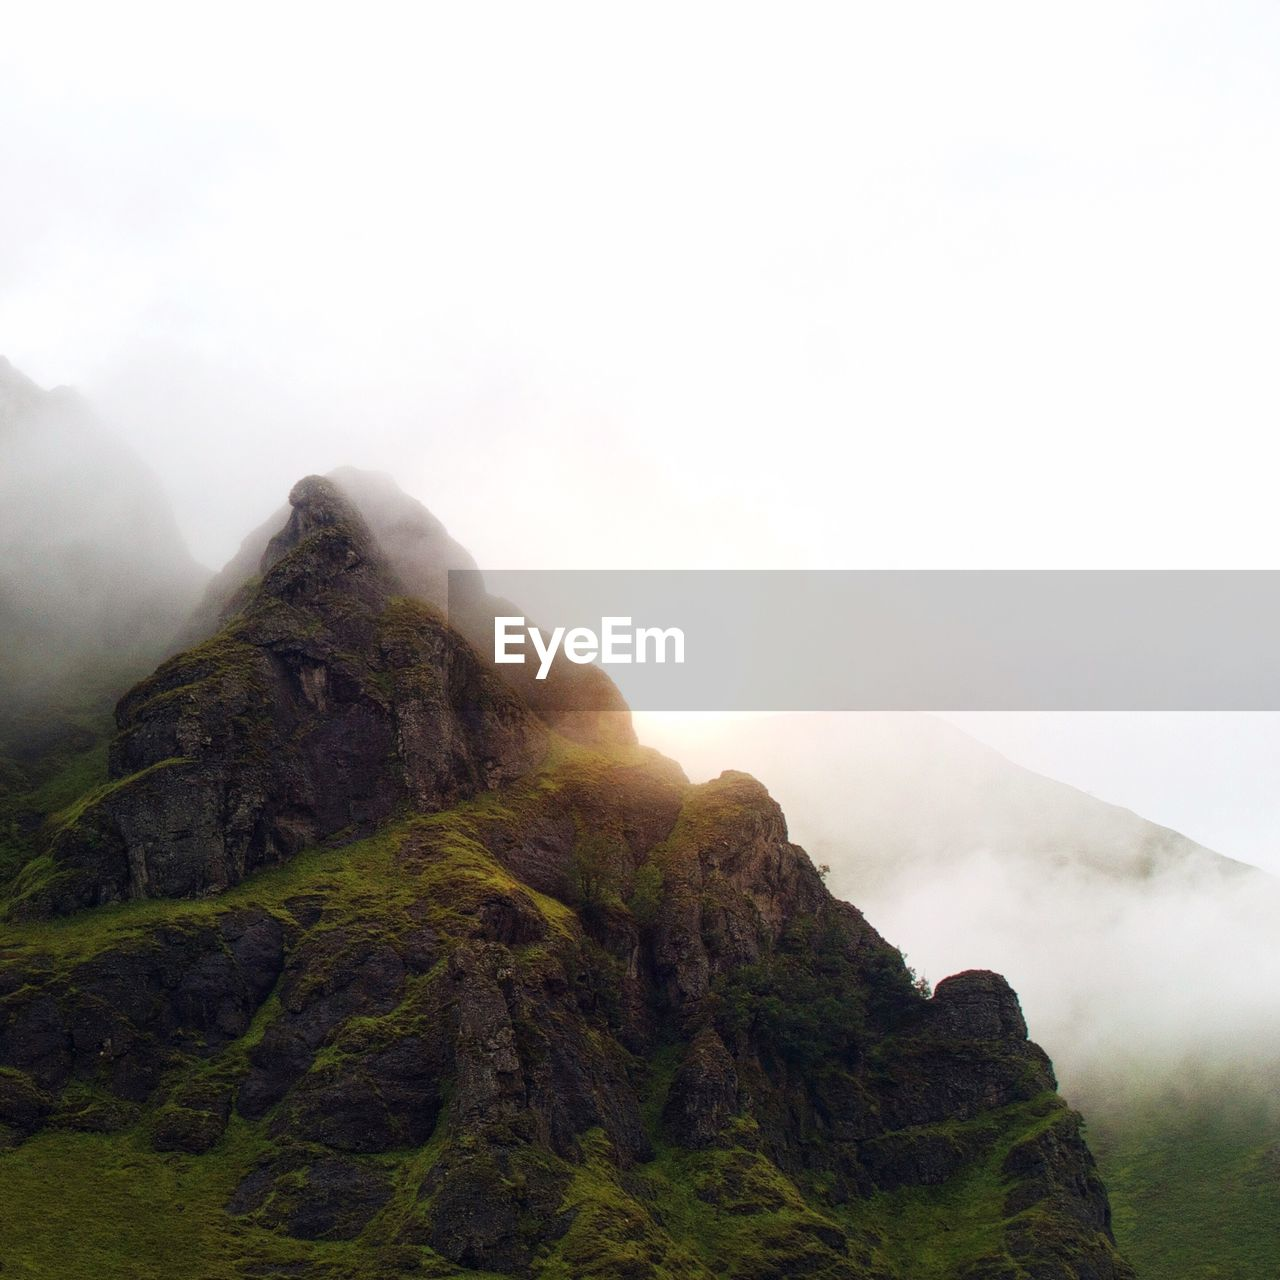 View of mountains against sky during foggy weather